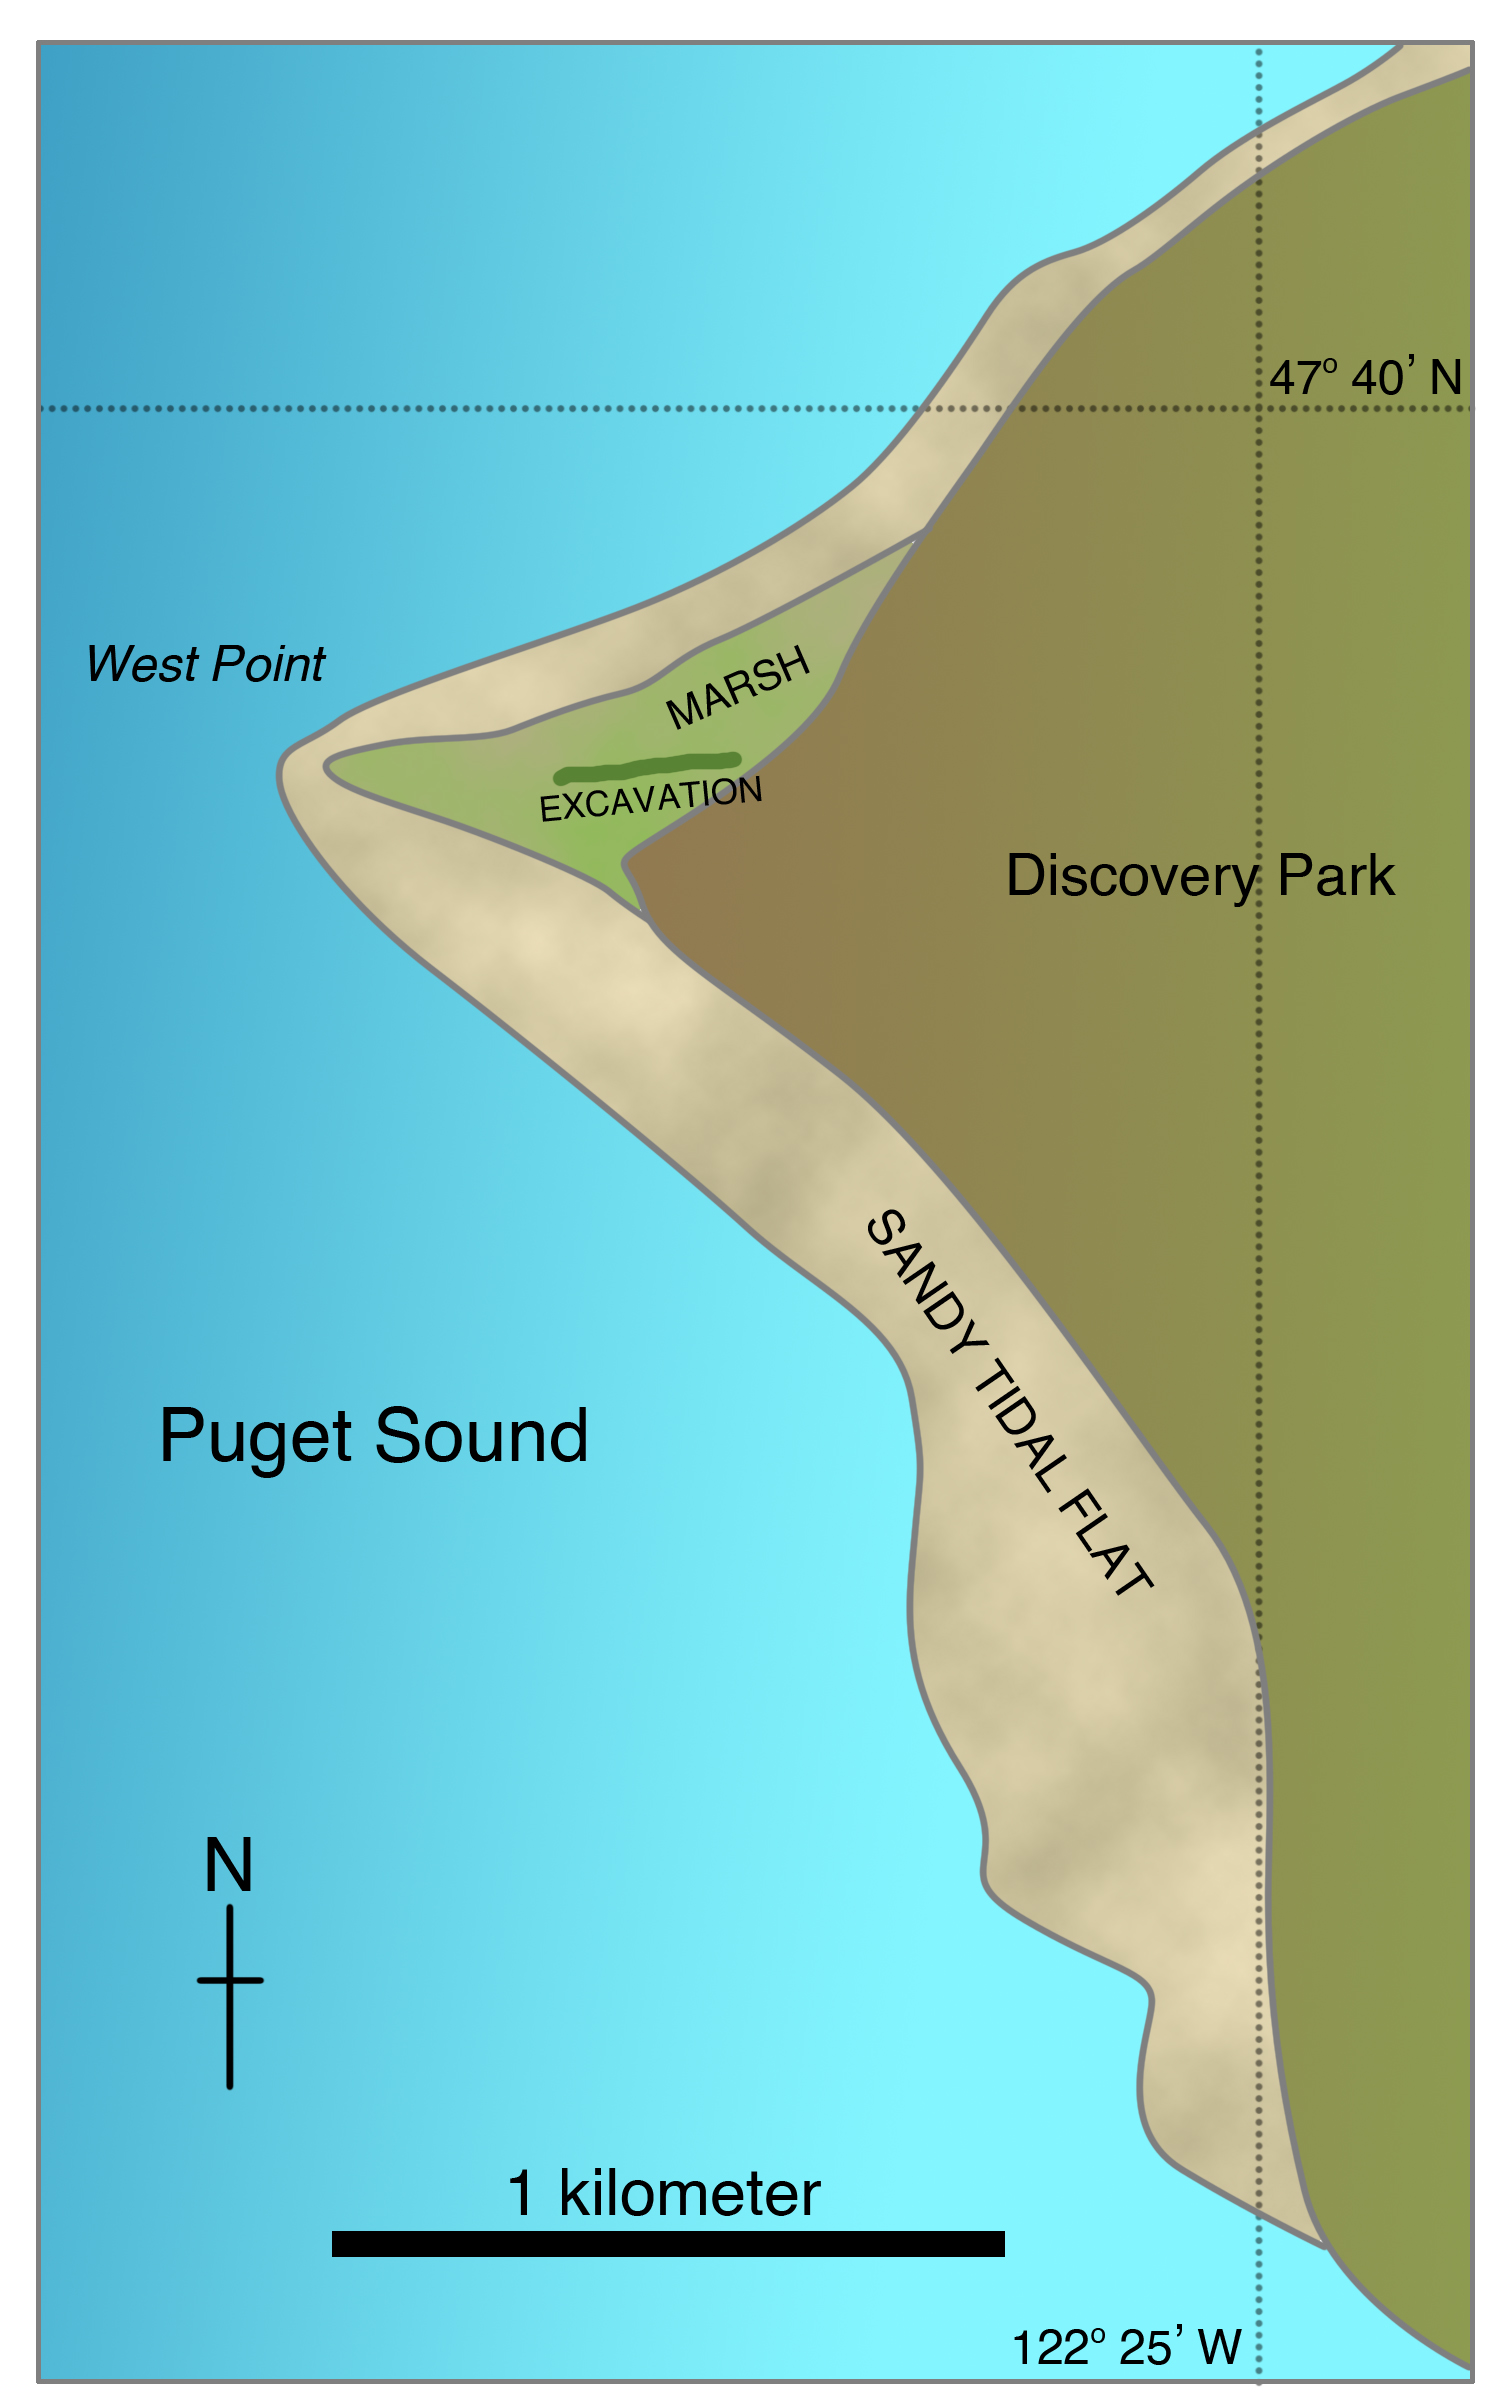 Map of West Point area of Magnolia Bluff, Seattle, locating excavation depicted in Figure 6-6b (heavy line)